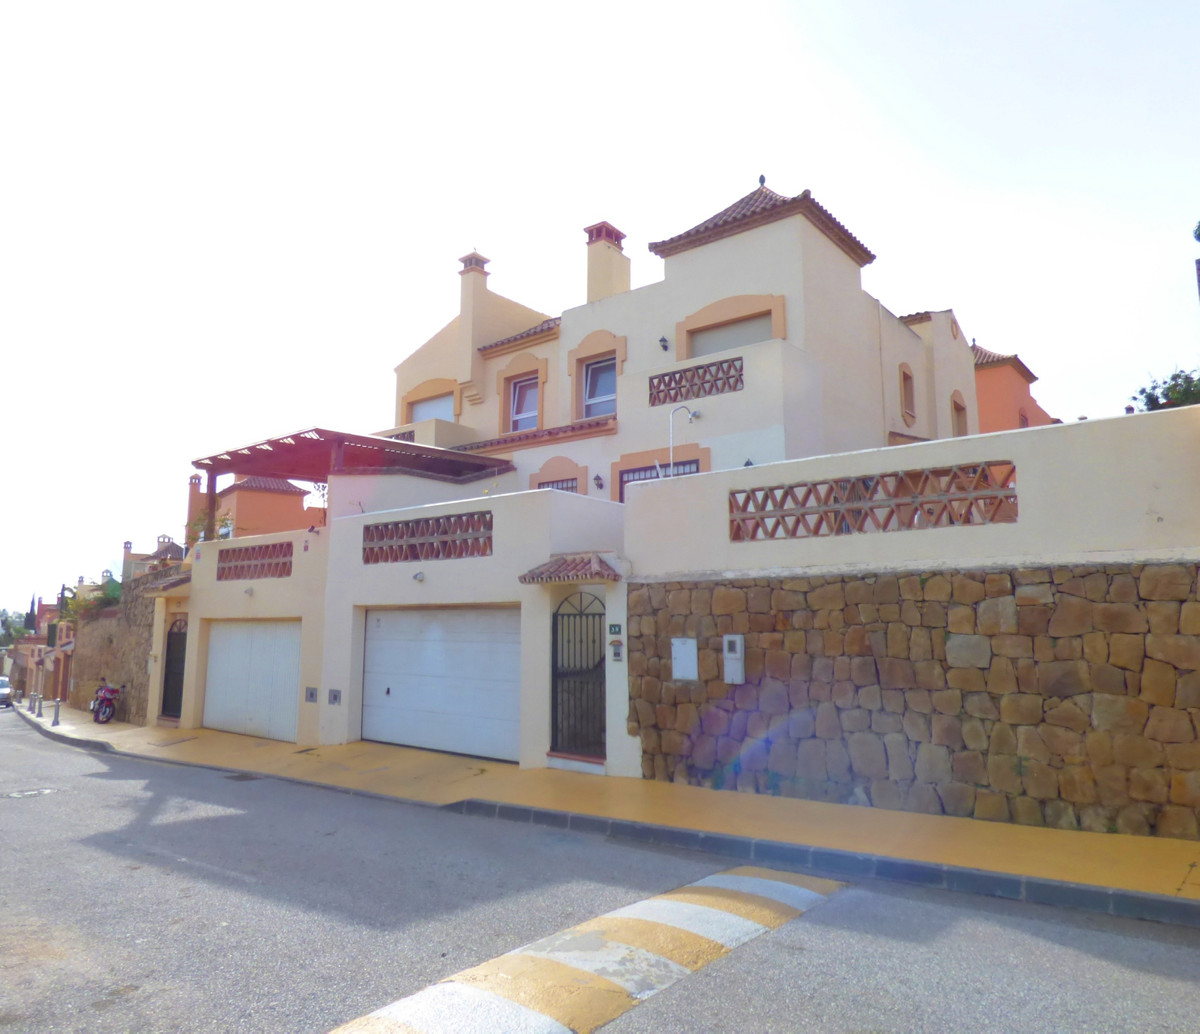 Semi-detached house in the Bellavista area with private garden and own pool. Composed of 4 bedrooms ,Spain